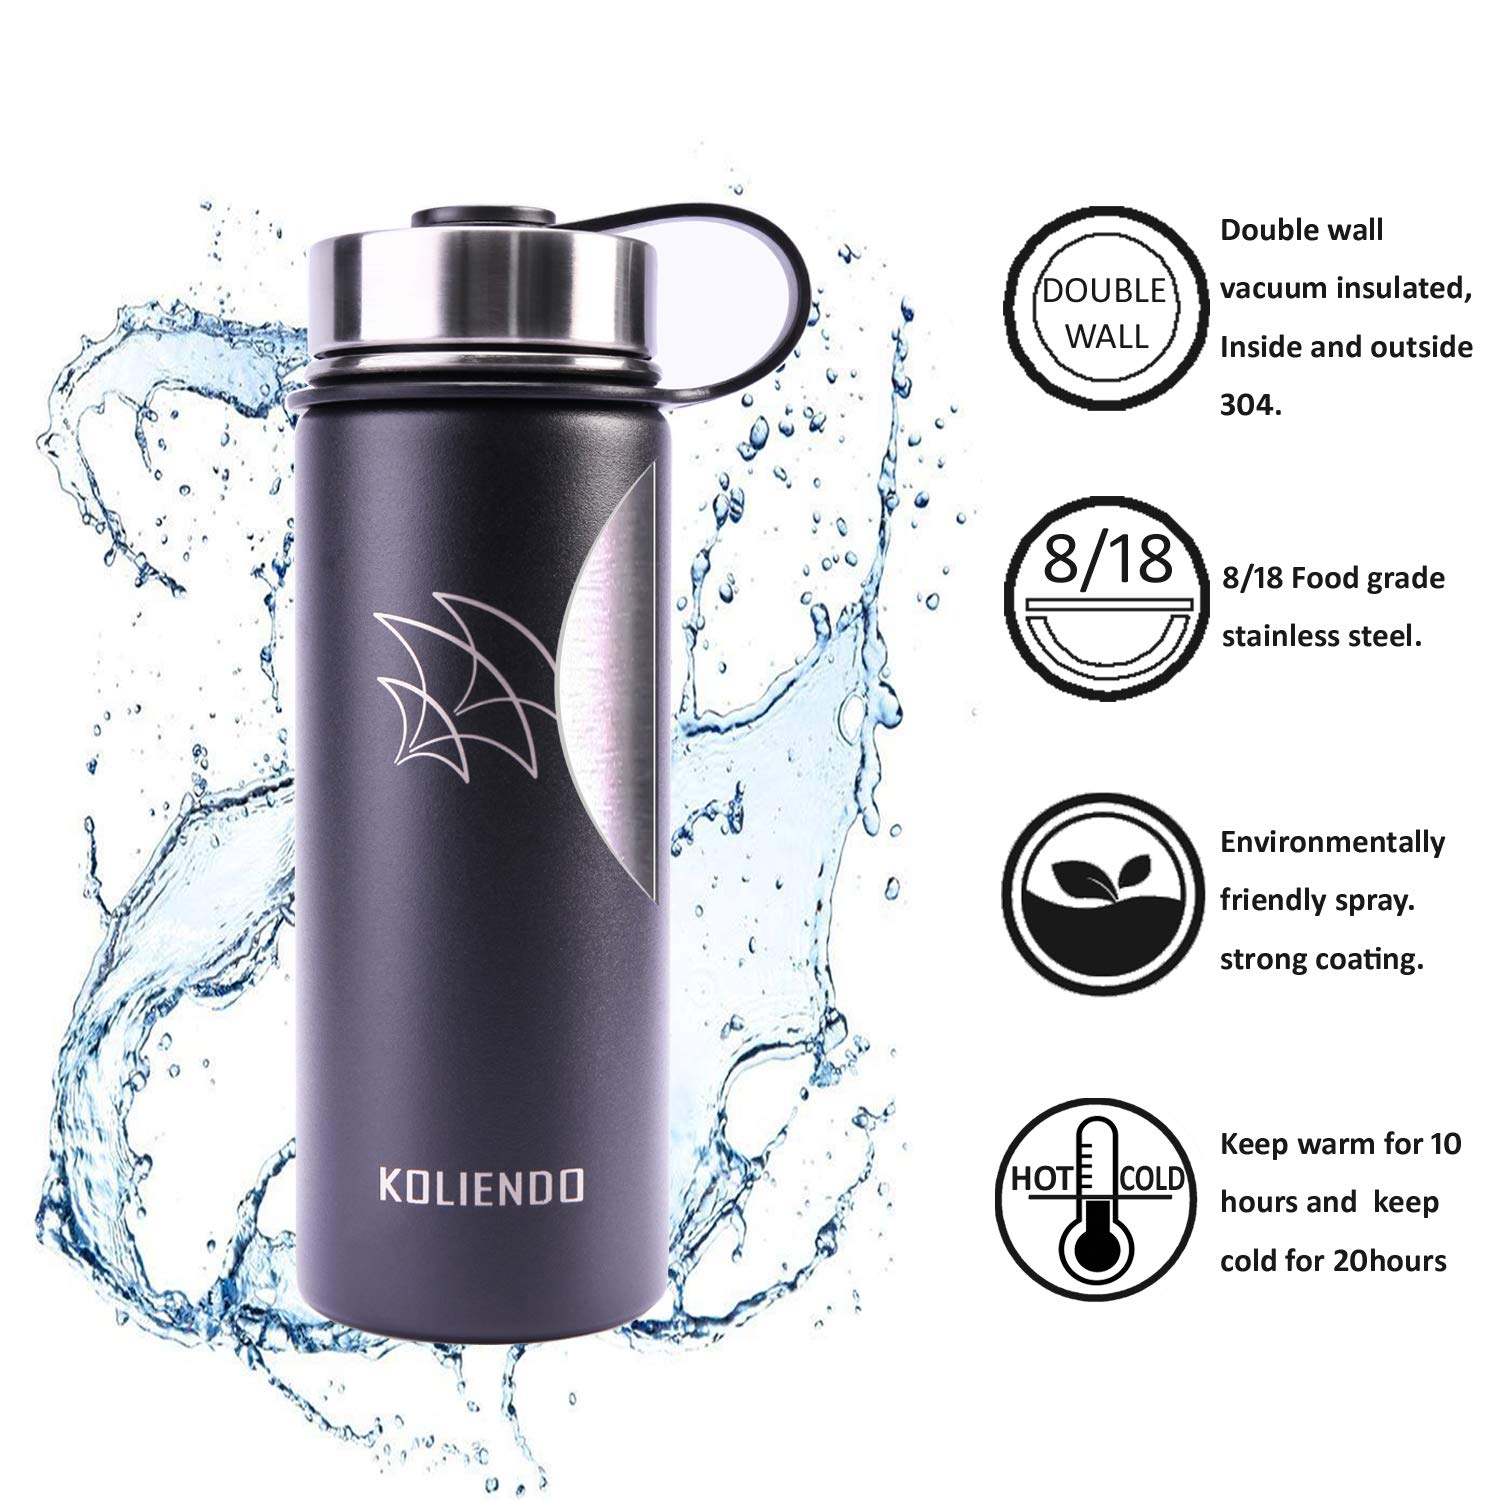 KOLIENDO Water bottle Stainless steel Double walled 500ml 900ml 1100ml vacuum insulated wide mouth thermos 2lids for Fitness Outdoor sports(black)